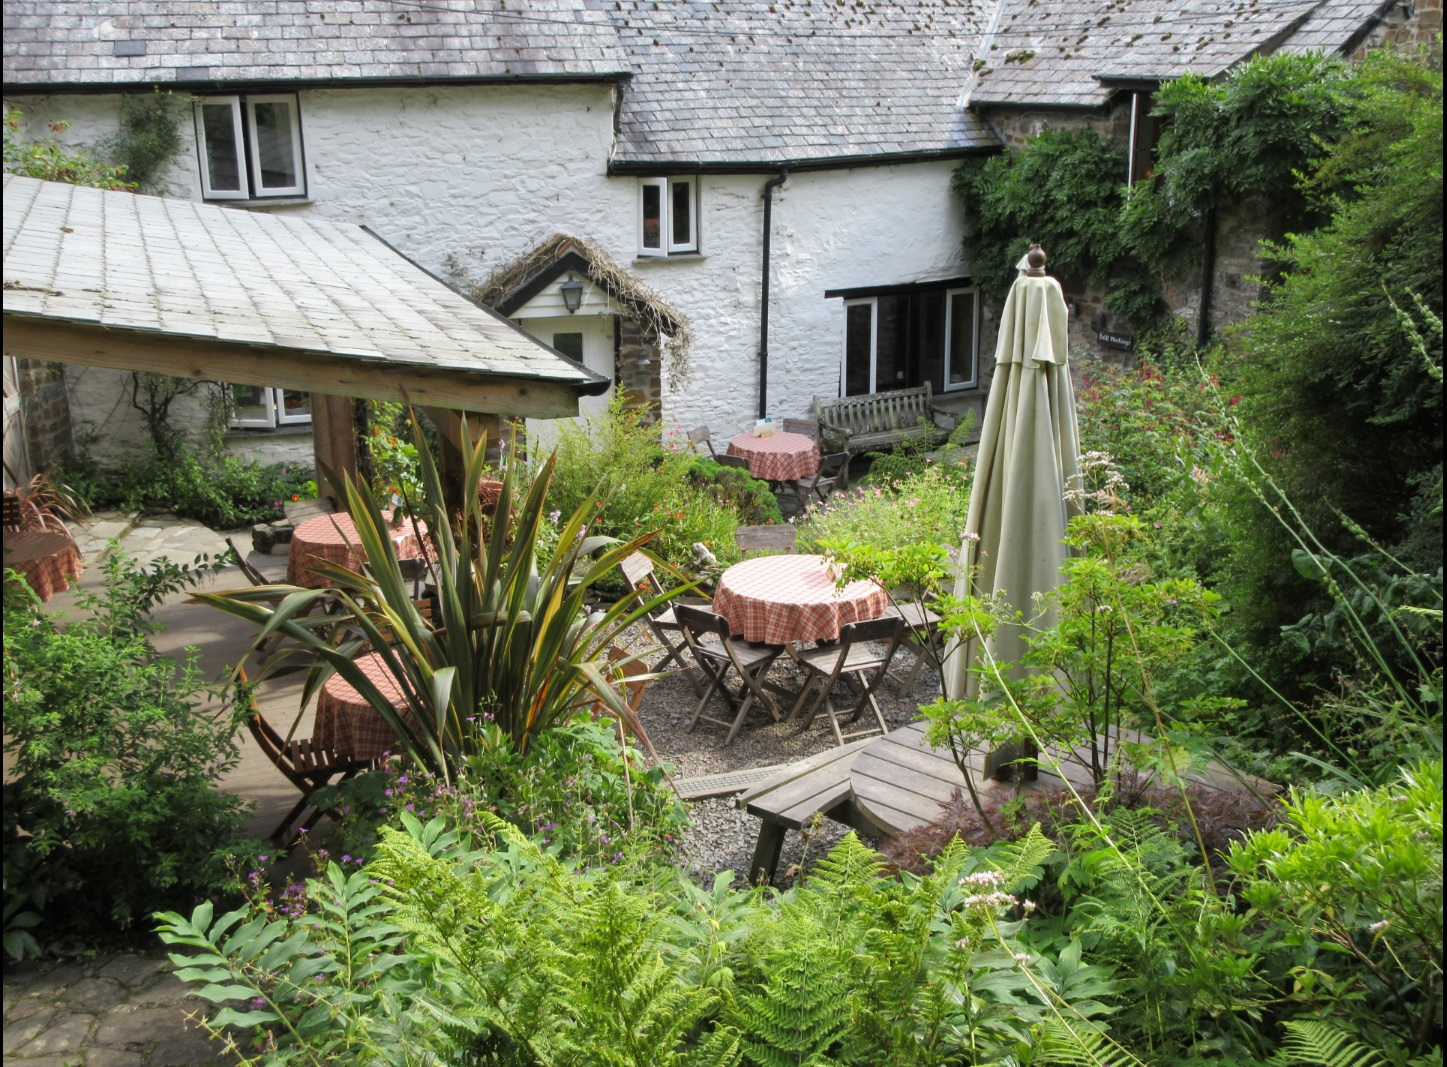 The tea terrace at award winning Docton Mill Gardens and Tea Room, Hartland, North Devon